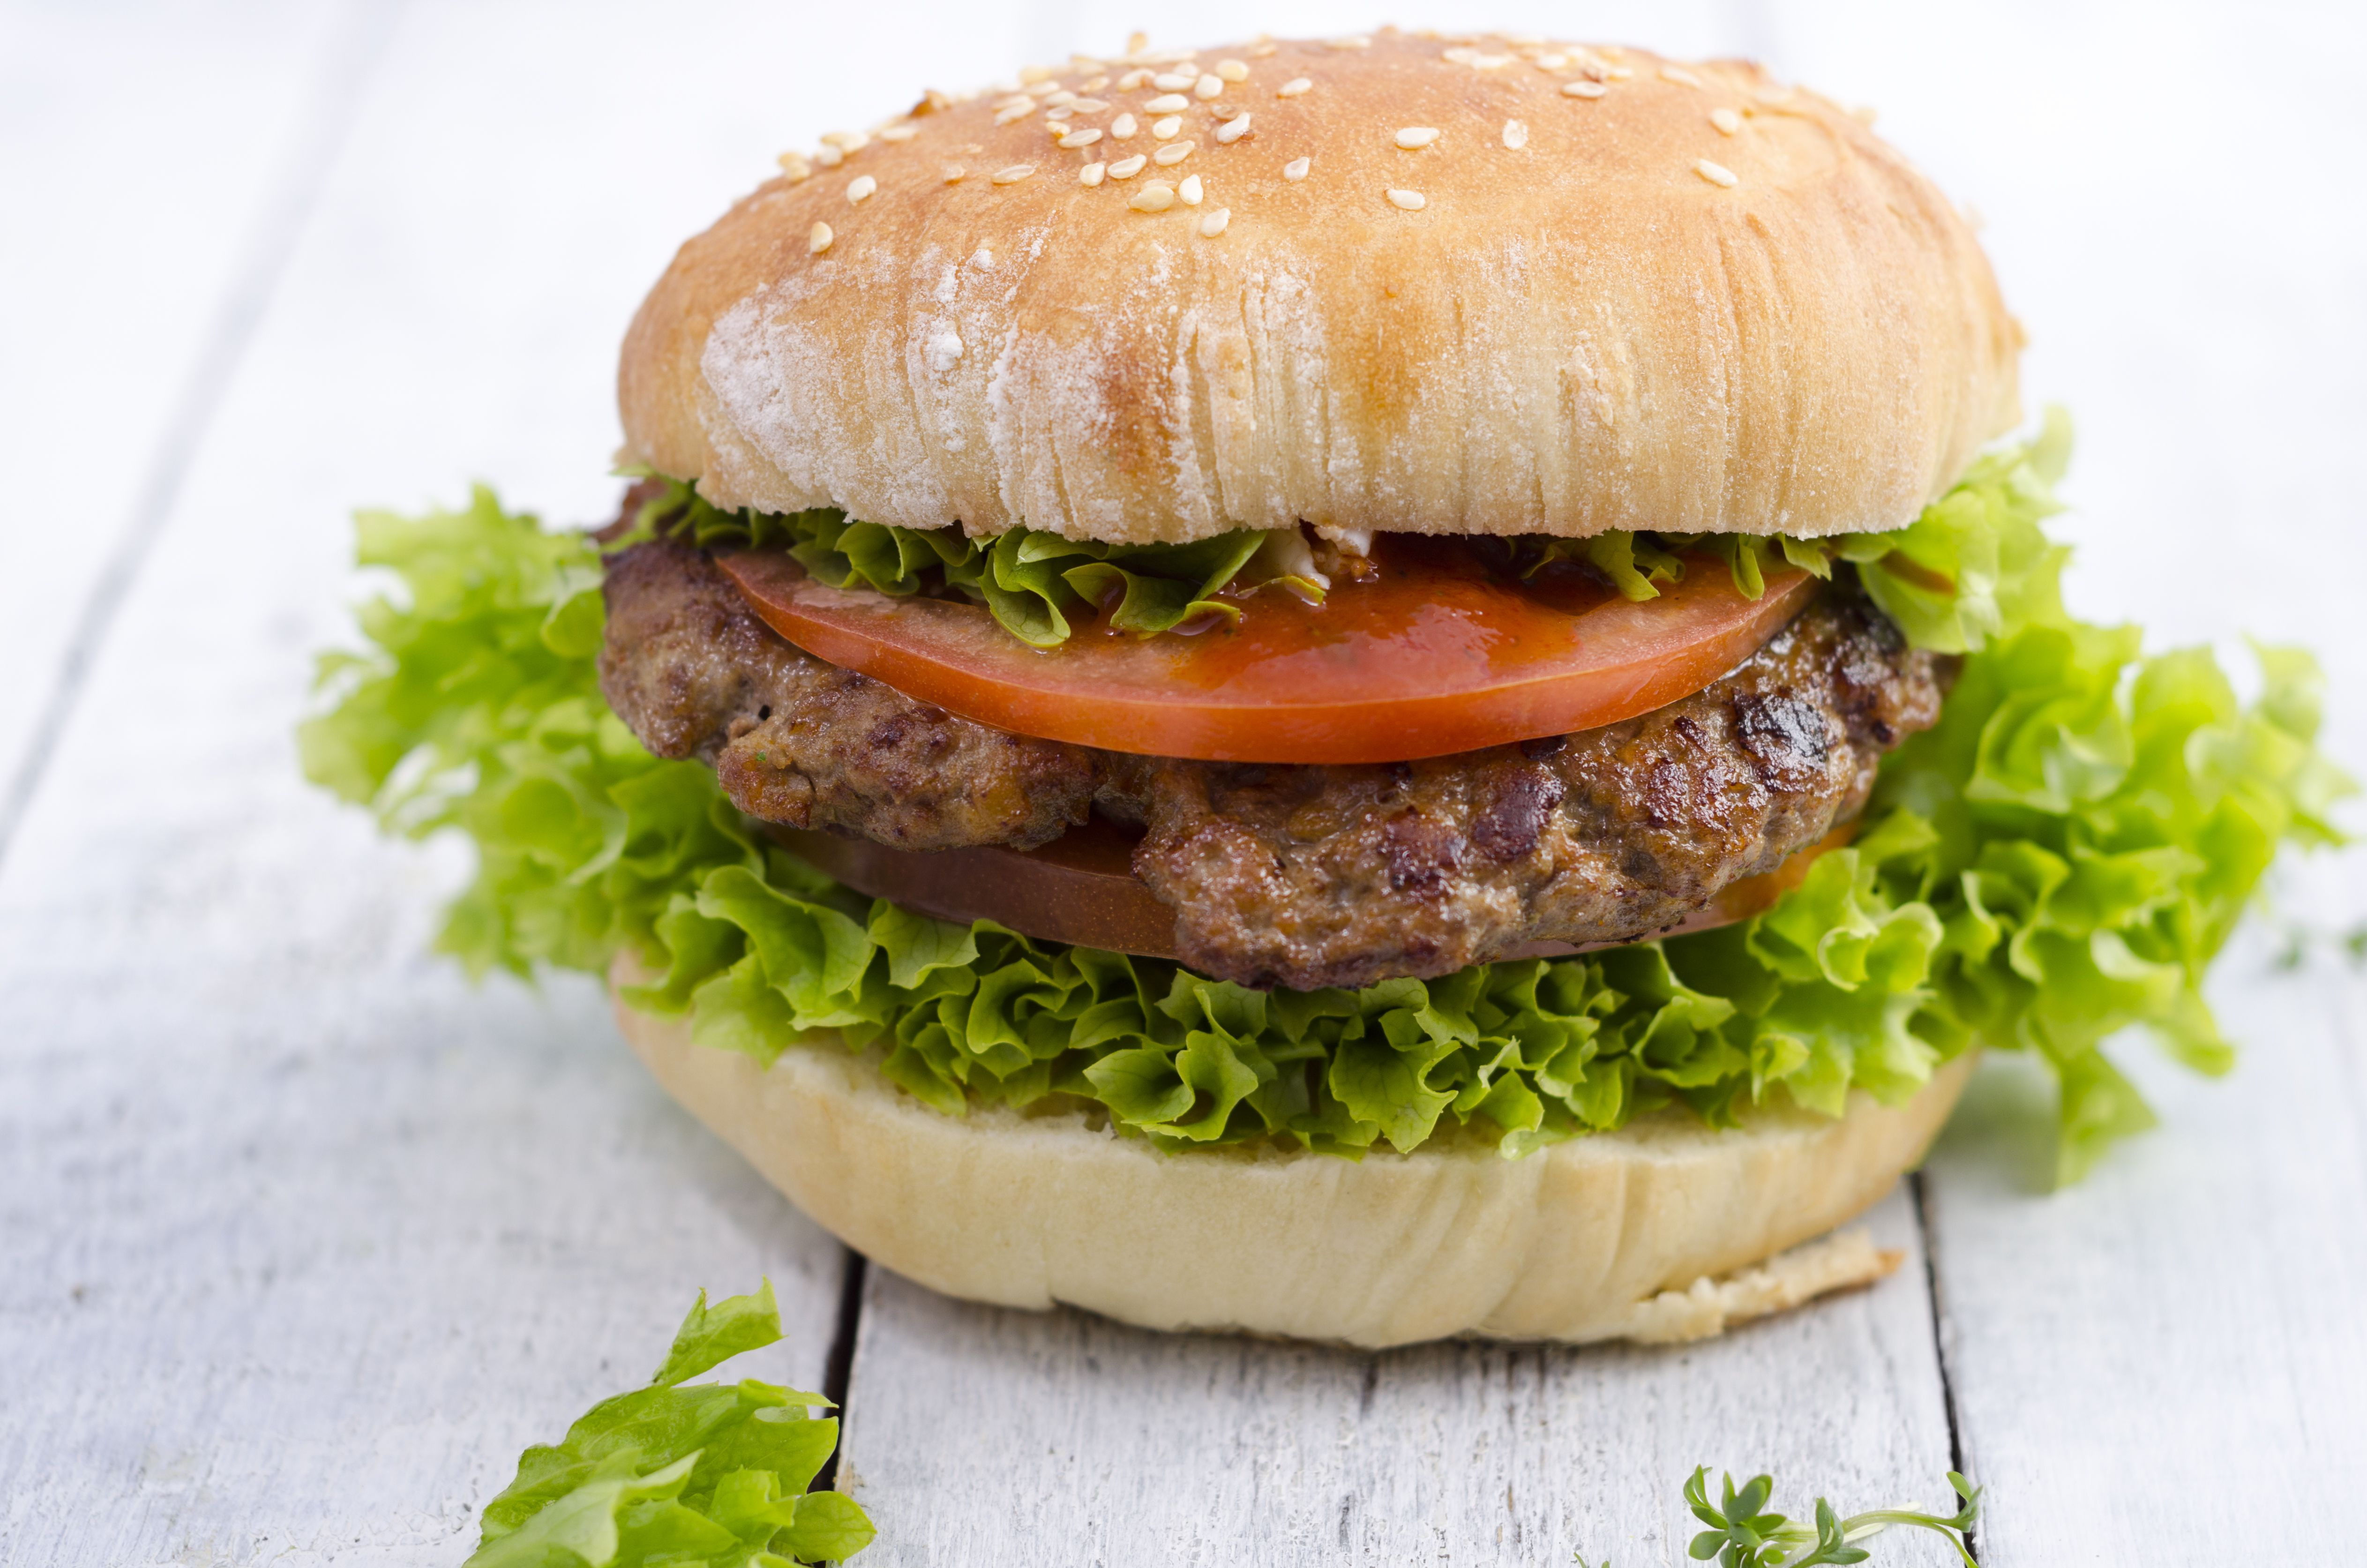 Hamburger Nutrition and Health Information